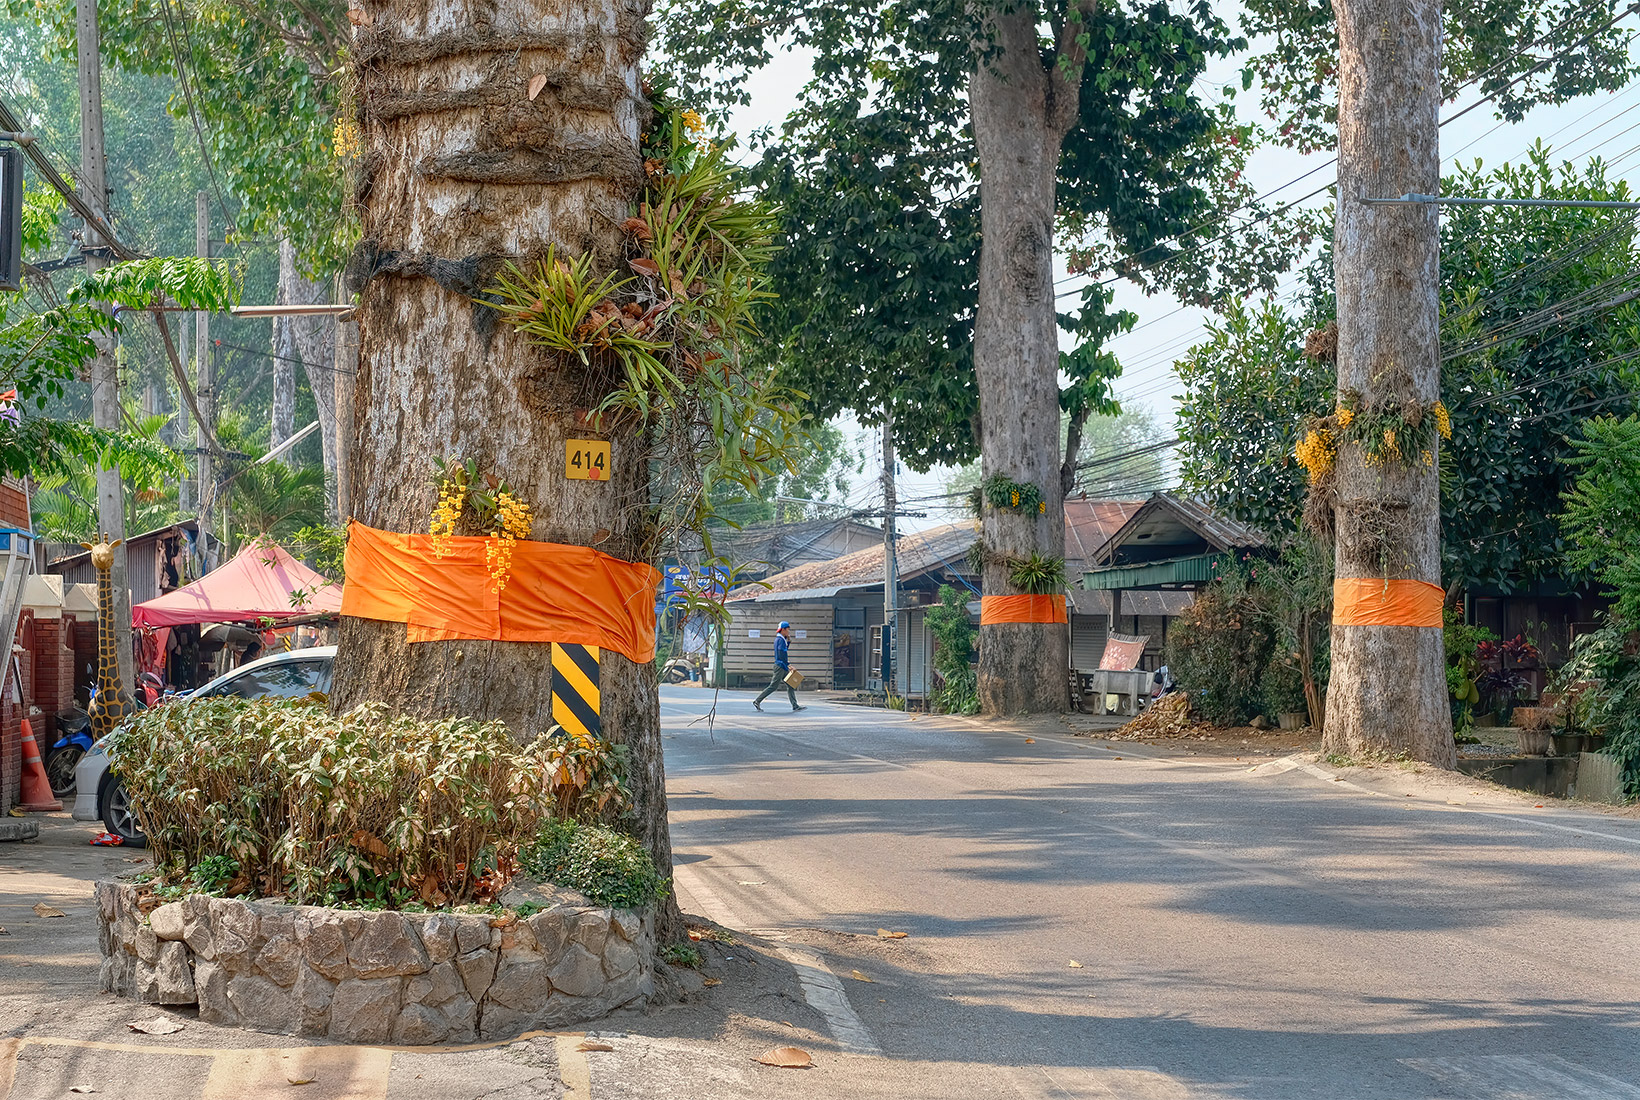 Dton Yaang Naa Trees along Chinag Mai-Lamphun Road have been ordained by wrapping them in saffron monk's robes, ensuring they will not be cut down